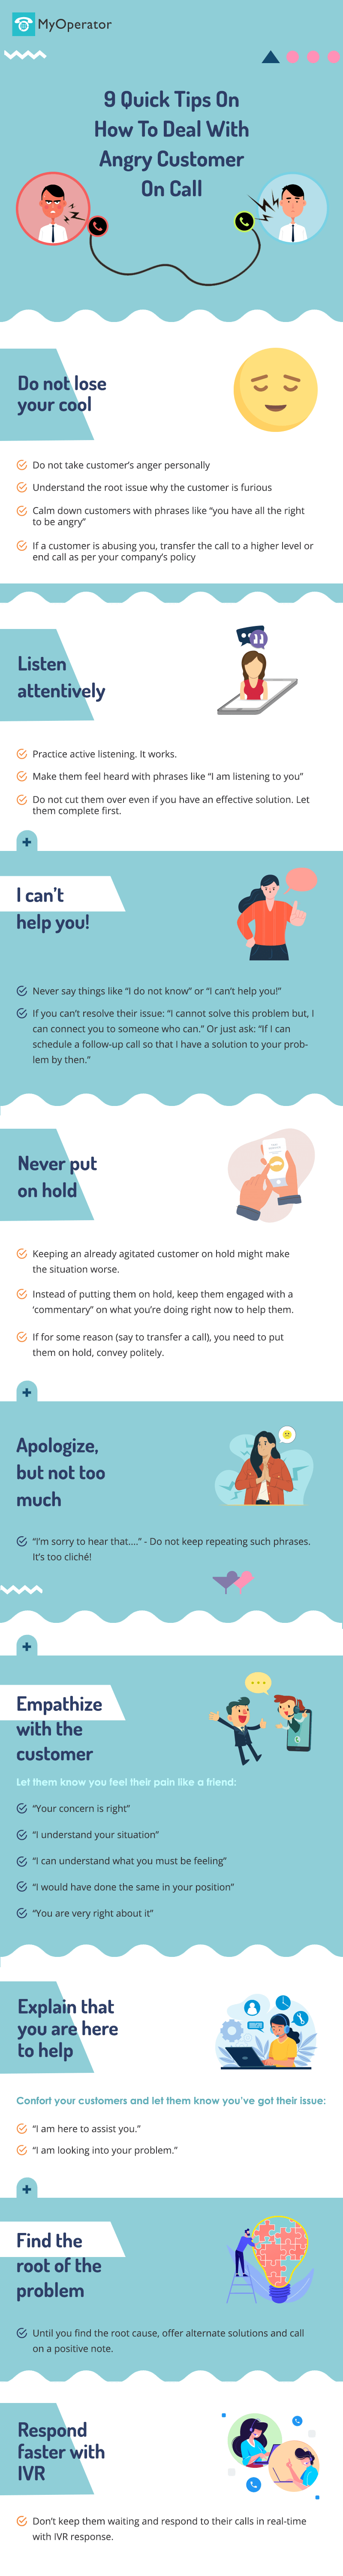 9 Quick Tips On How To Deal With Angry Customers On Call [Infographic]